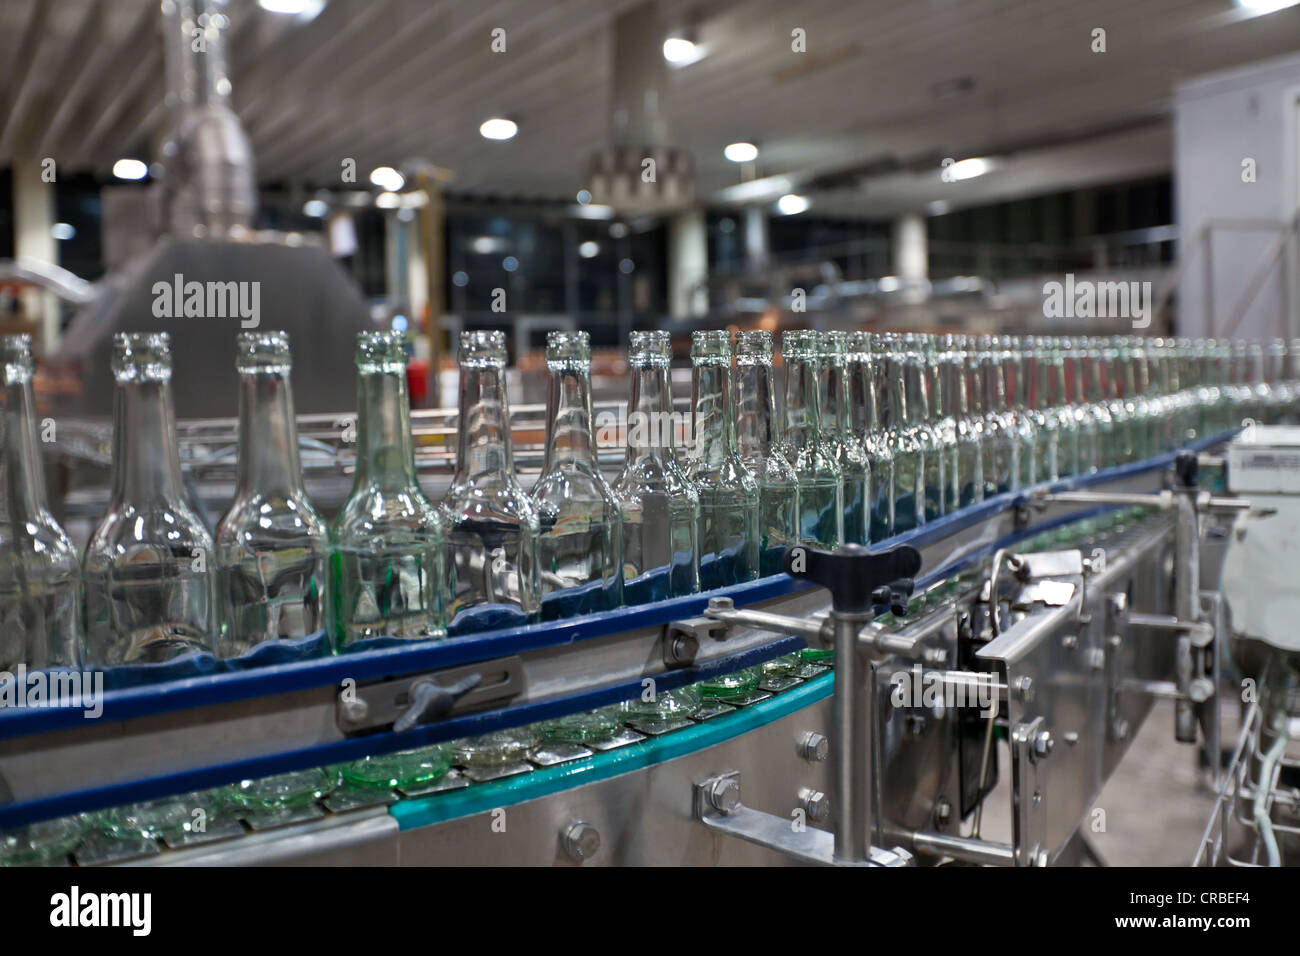 Empty beer bottles after cleaning, on a conveyor belt, Binding brewery, Frankfurt, Hesse, Germany, Europe - Stock Image